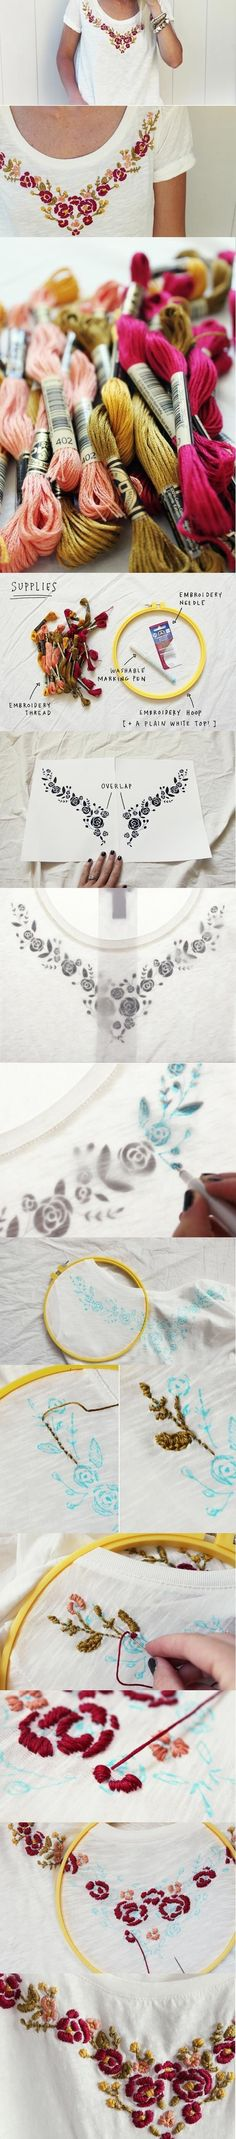 Floral Embroidered Top DIY DIY: Hand Embroidered T-shirt Different colours definetly Hand Embroidery Designs, Ribbon Embroidery, Embroidery Art, Cross Stitch Embroidery, Embroidery Patterns, Machine Embroidery, Sewing Patterns, Broderie Simple, T-shirt Broderie